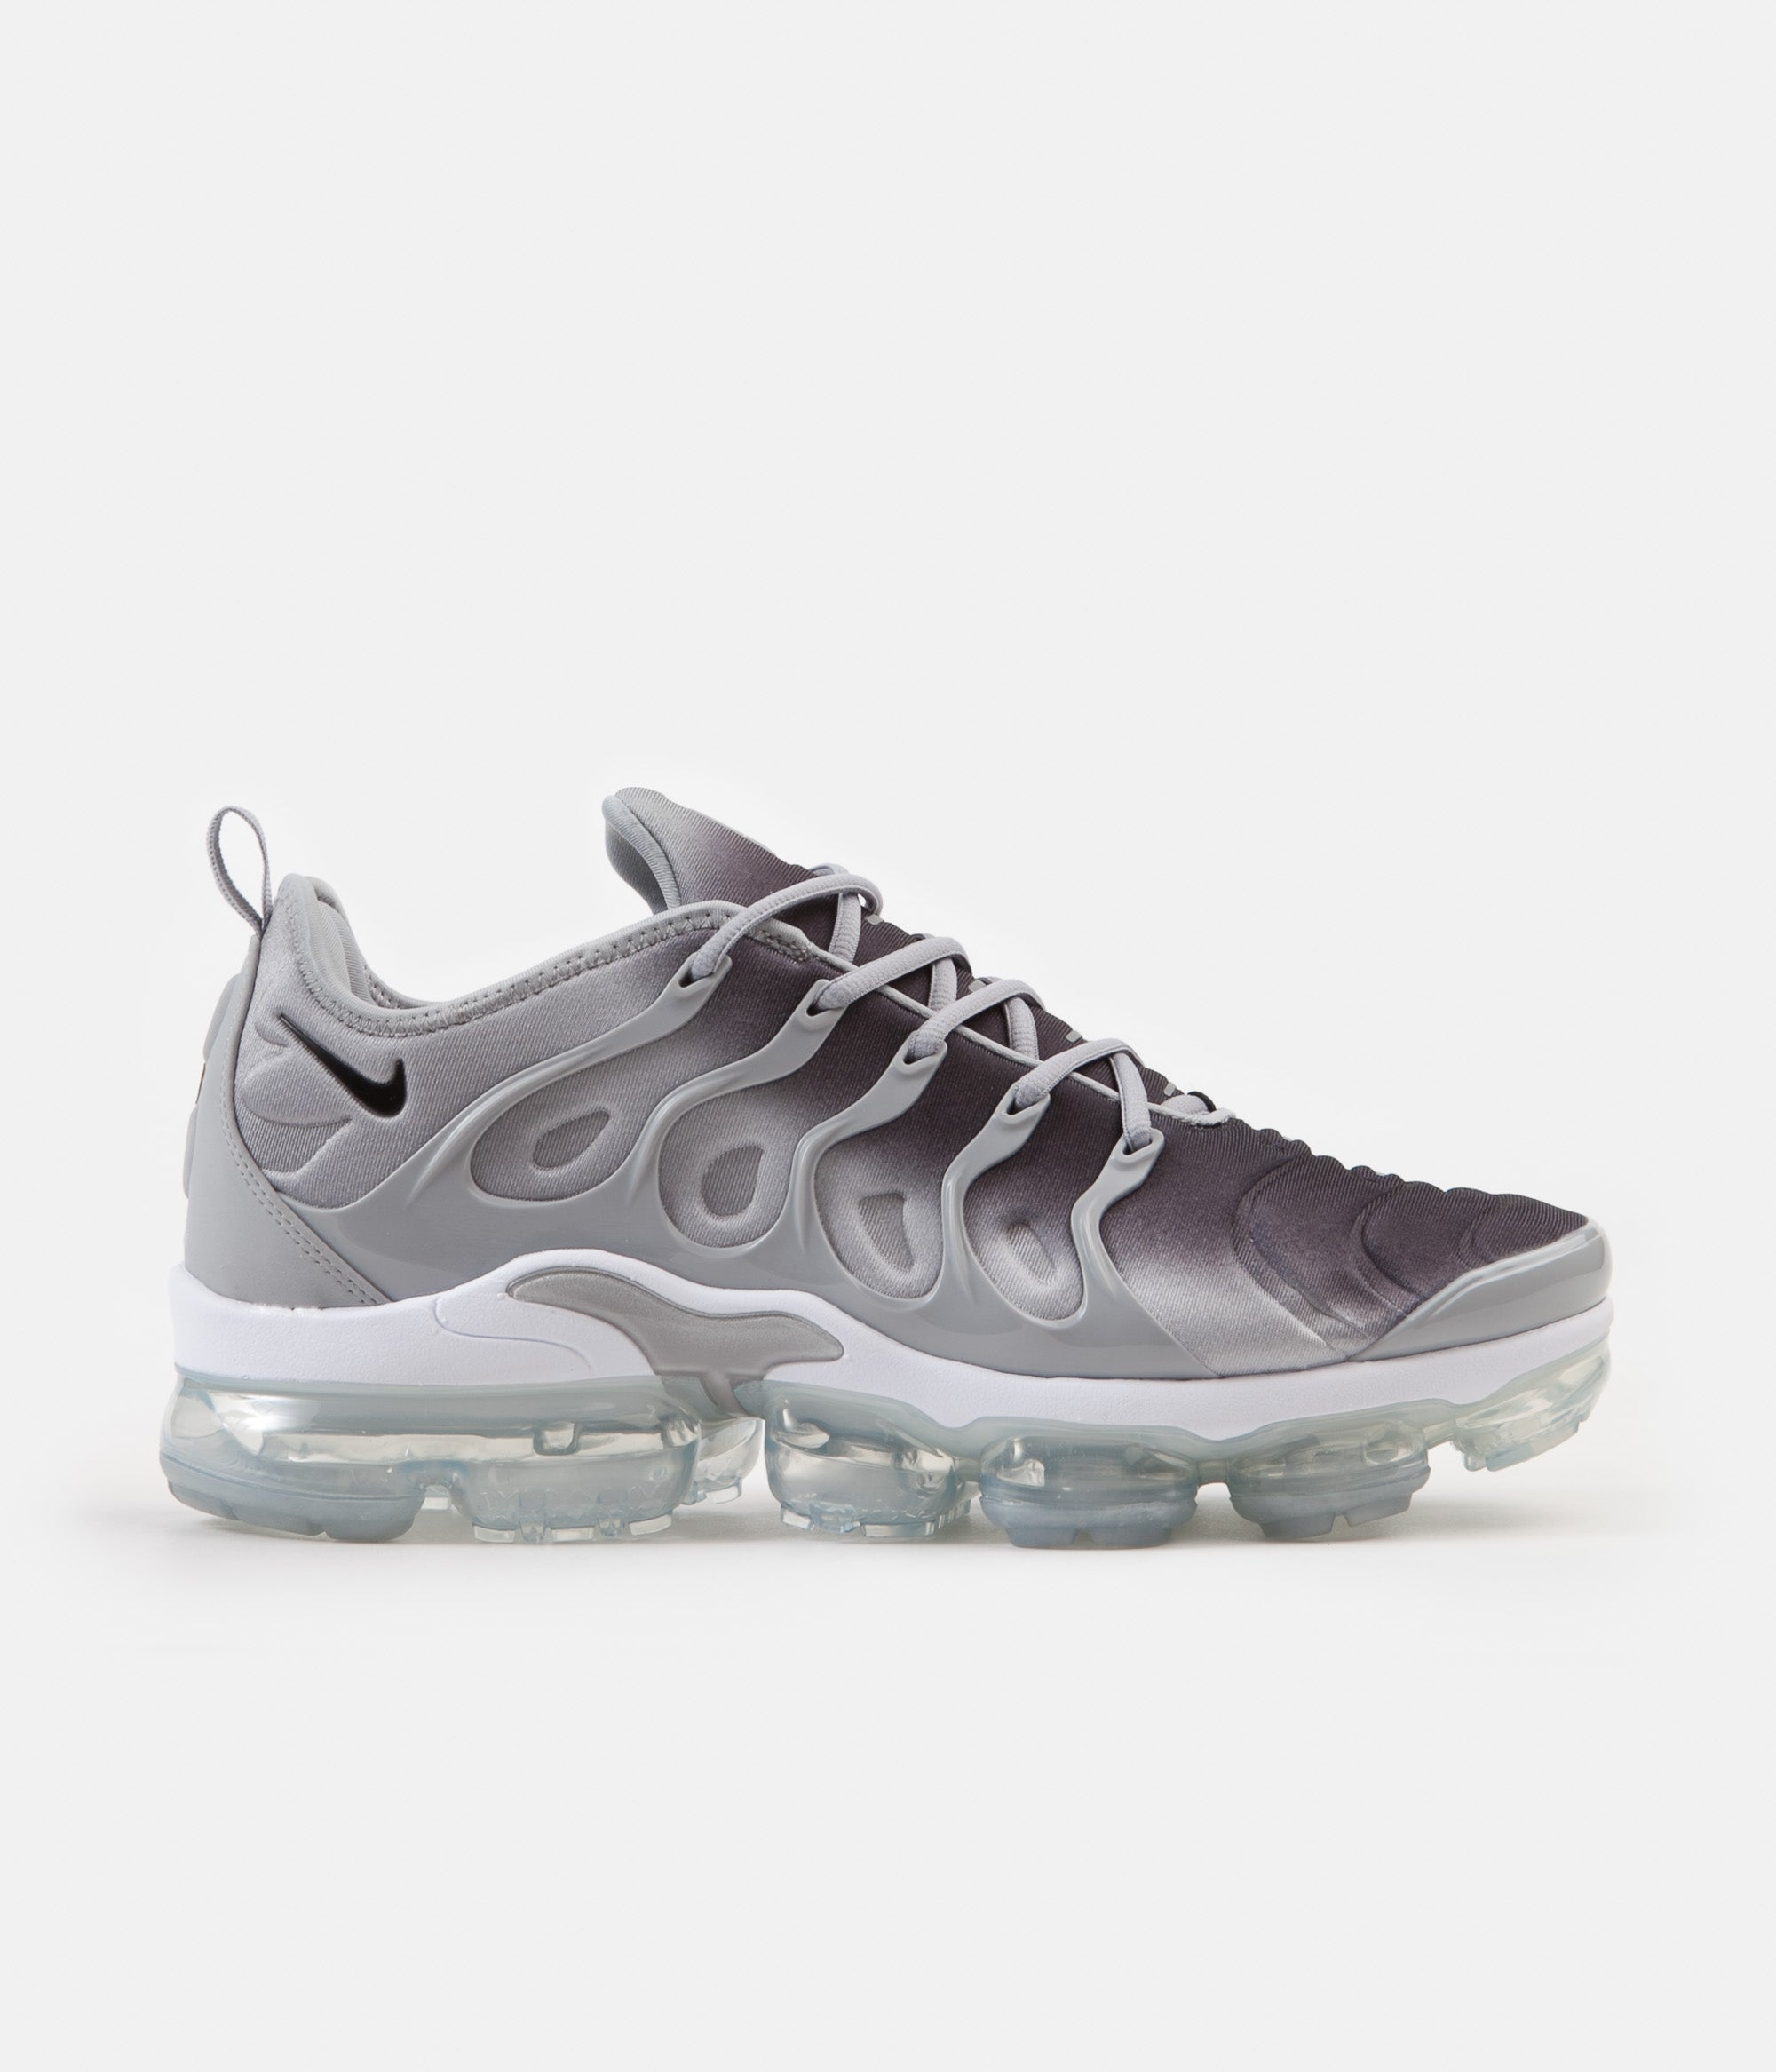 53405e0257 Nike Air VaporMax Plus Shoes - Wolf Grey / Black - White | Always in ...